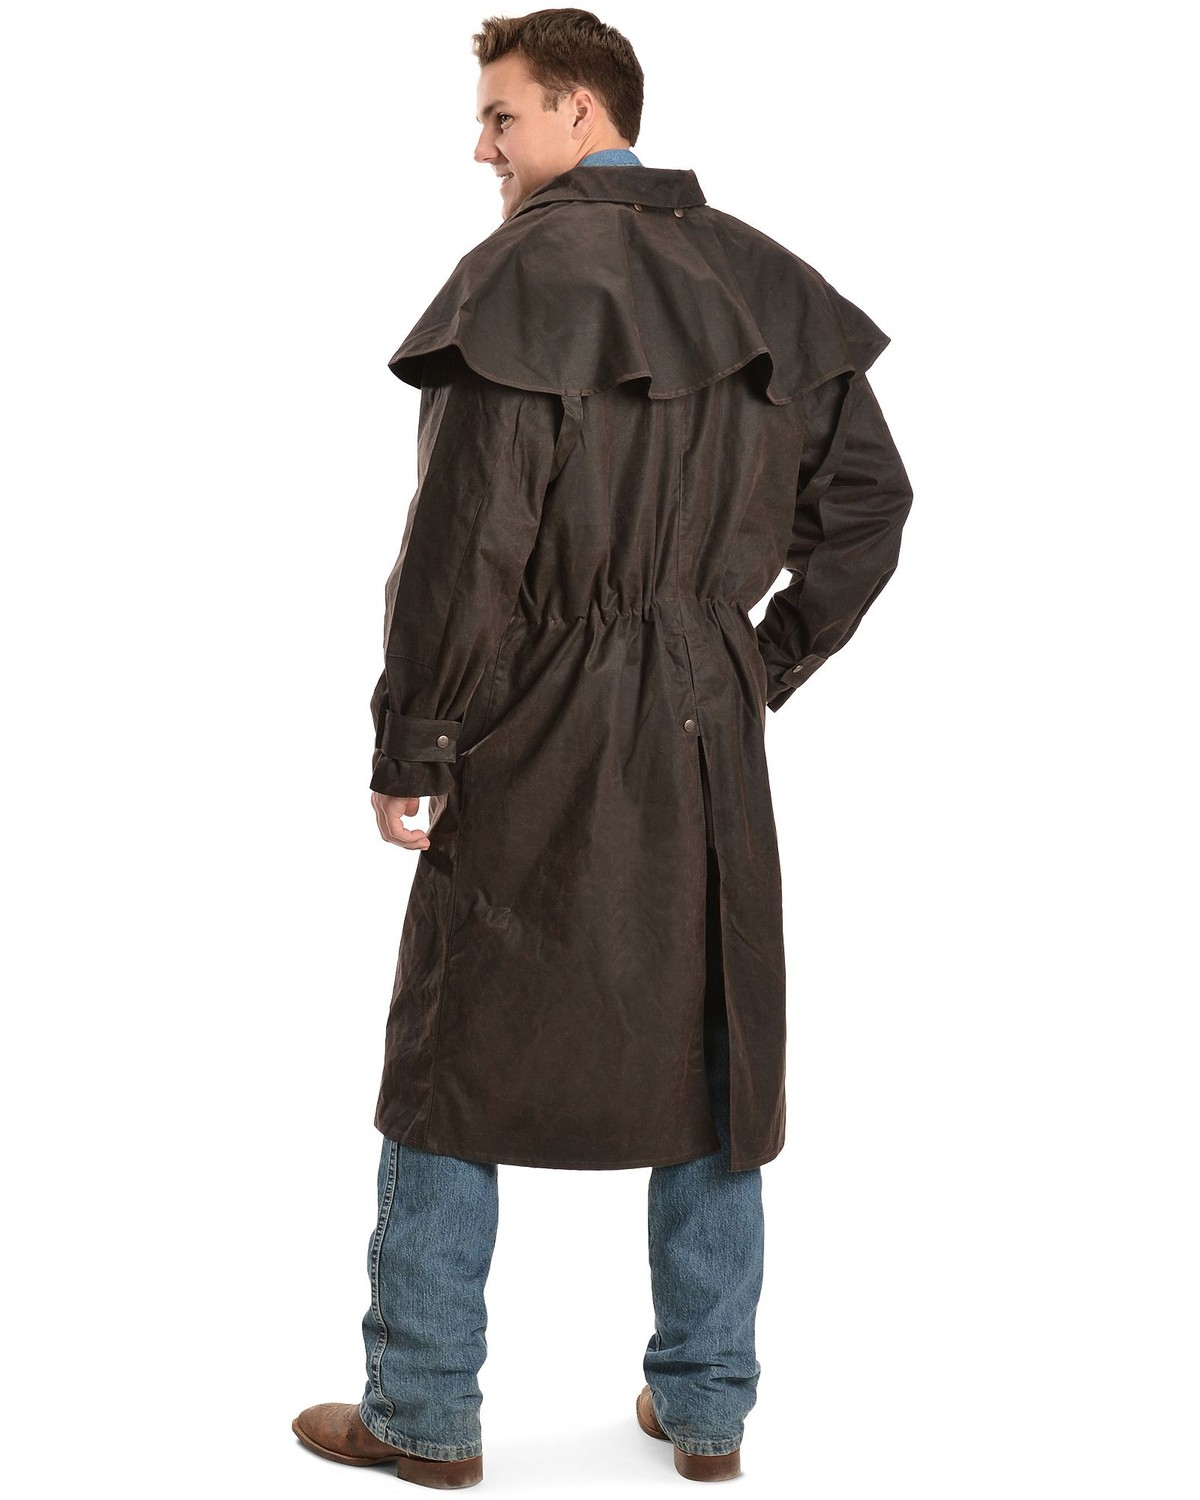 Oilskin Trench Coat Tradingbasis